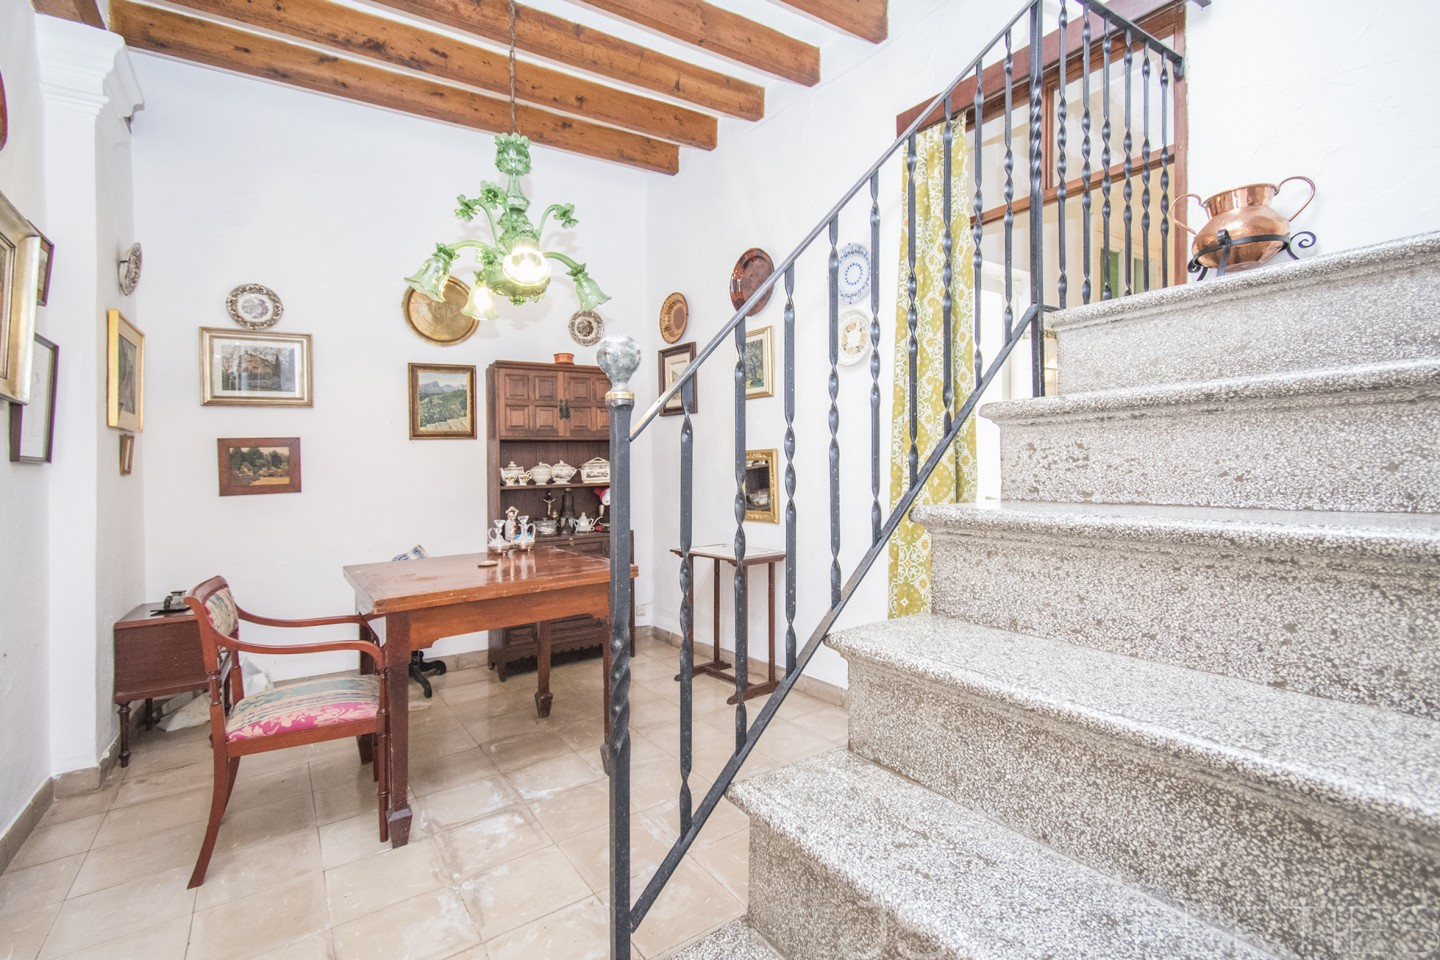 TOWN HOUSE IN POLLENSA